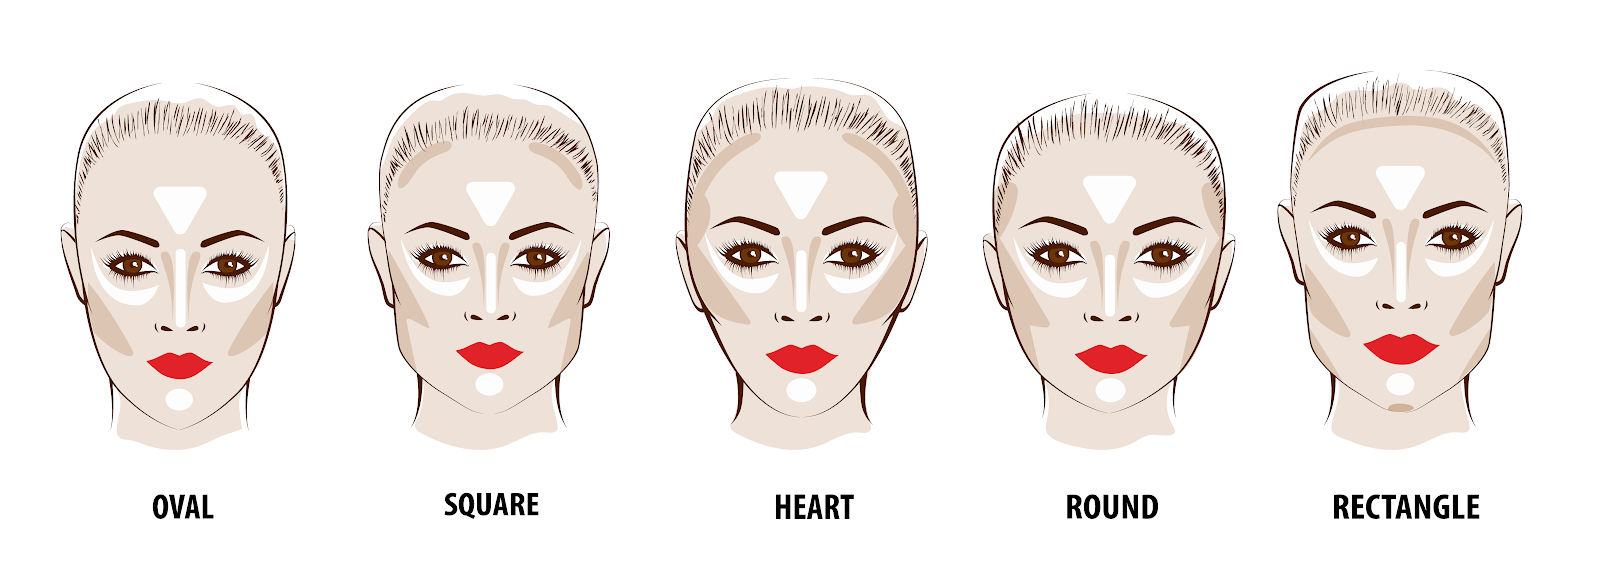 drawings of five different kinds of female face shapes